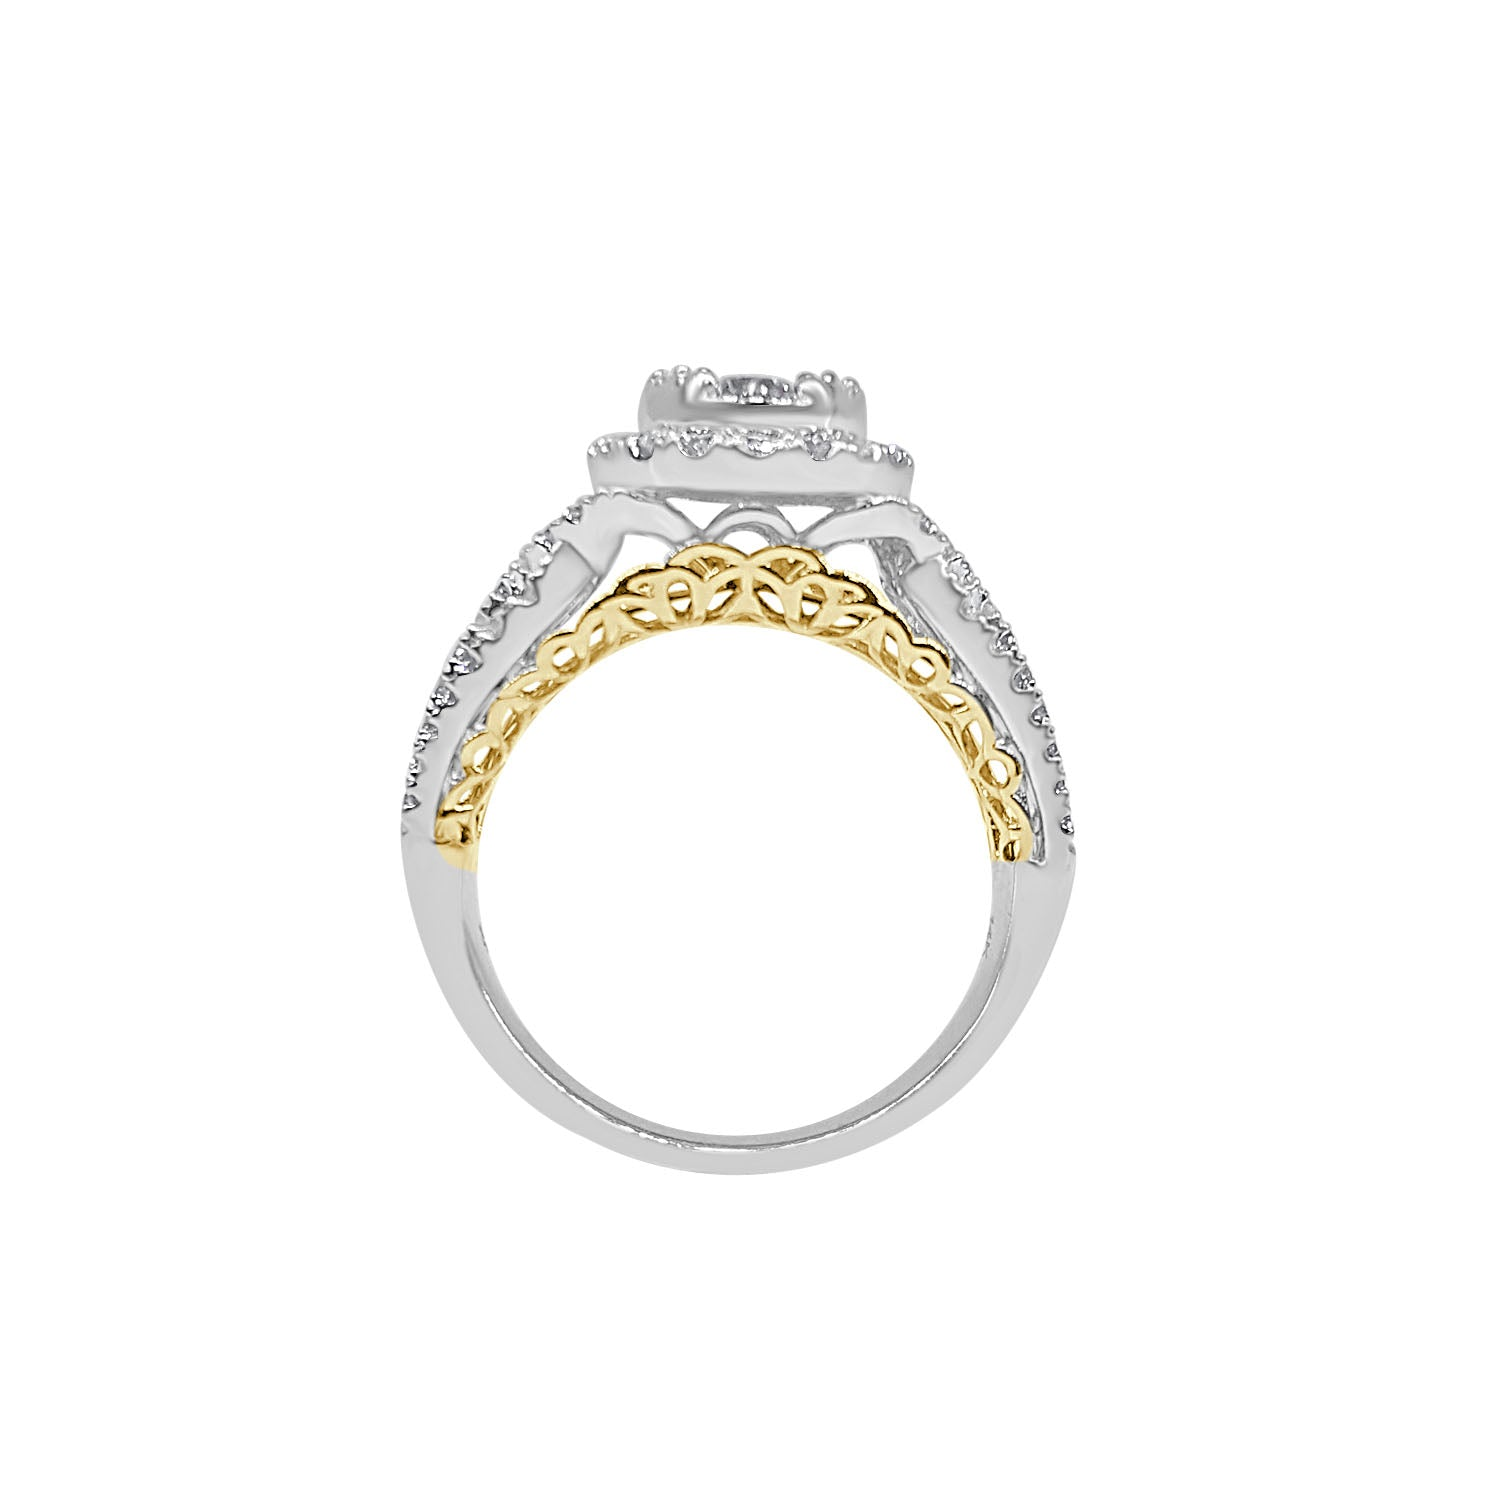 Two-tone Oval Diamond Cluster Ring With Fancy Band